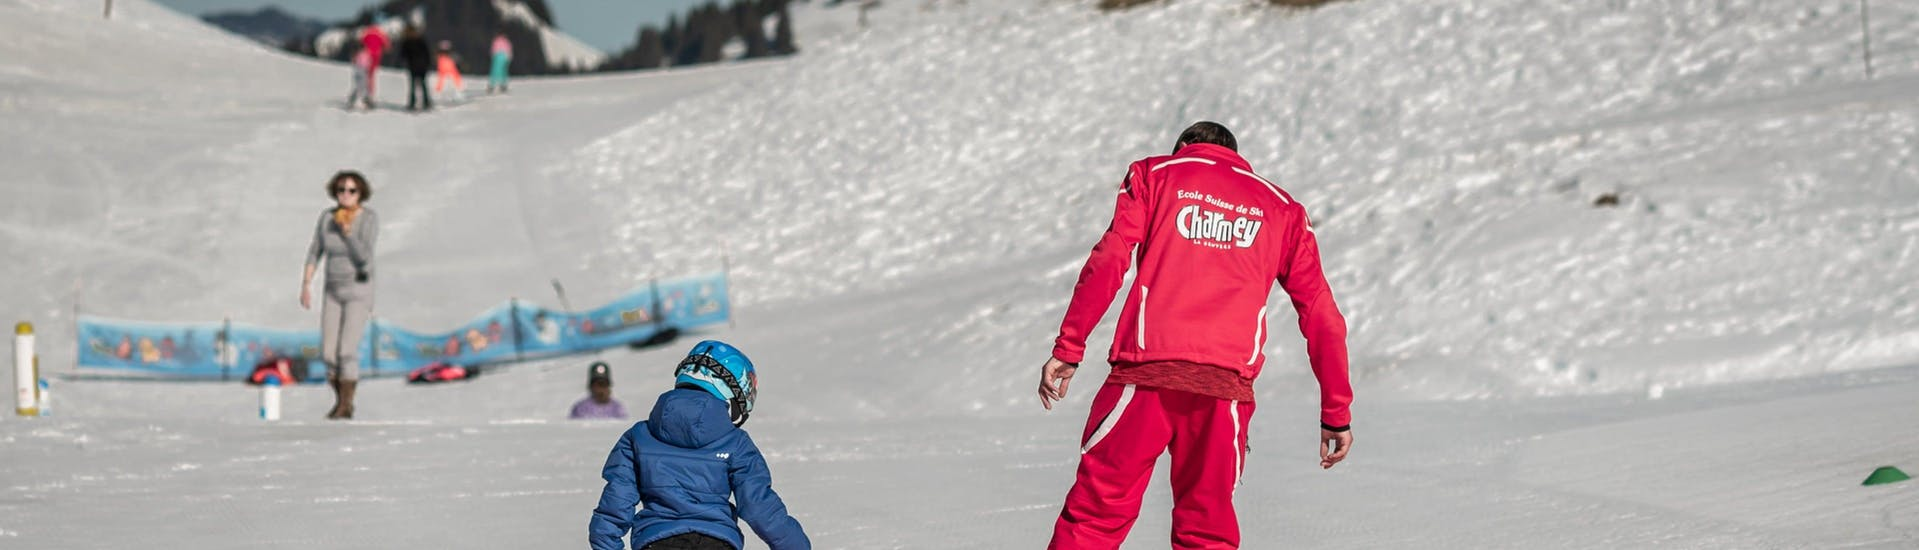 A kid is learning the basics of skiing with their ski instructor from the swiss ski school Charmey during their Private Ski Lessons for Kids (from 3 years) - All Levels.